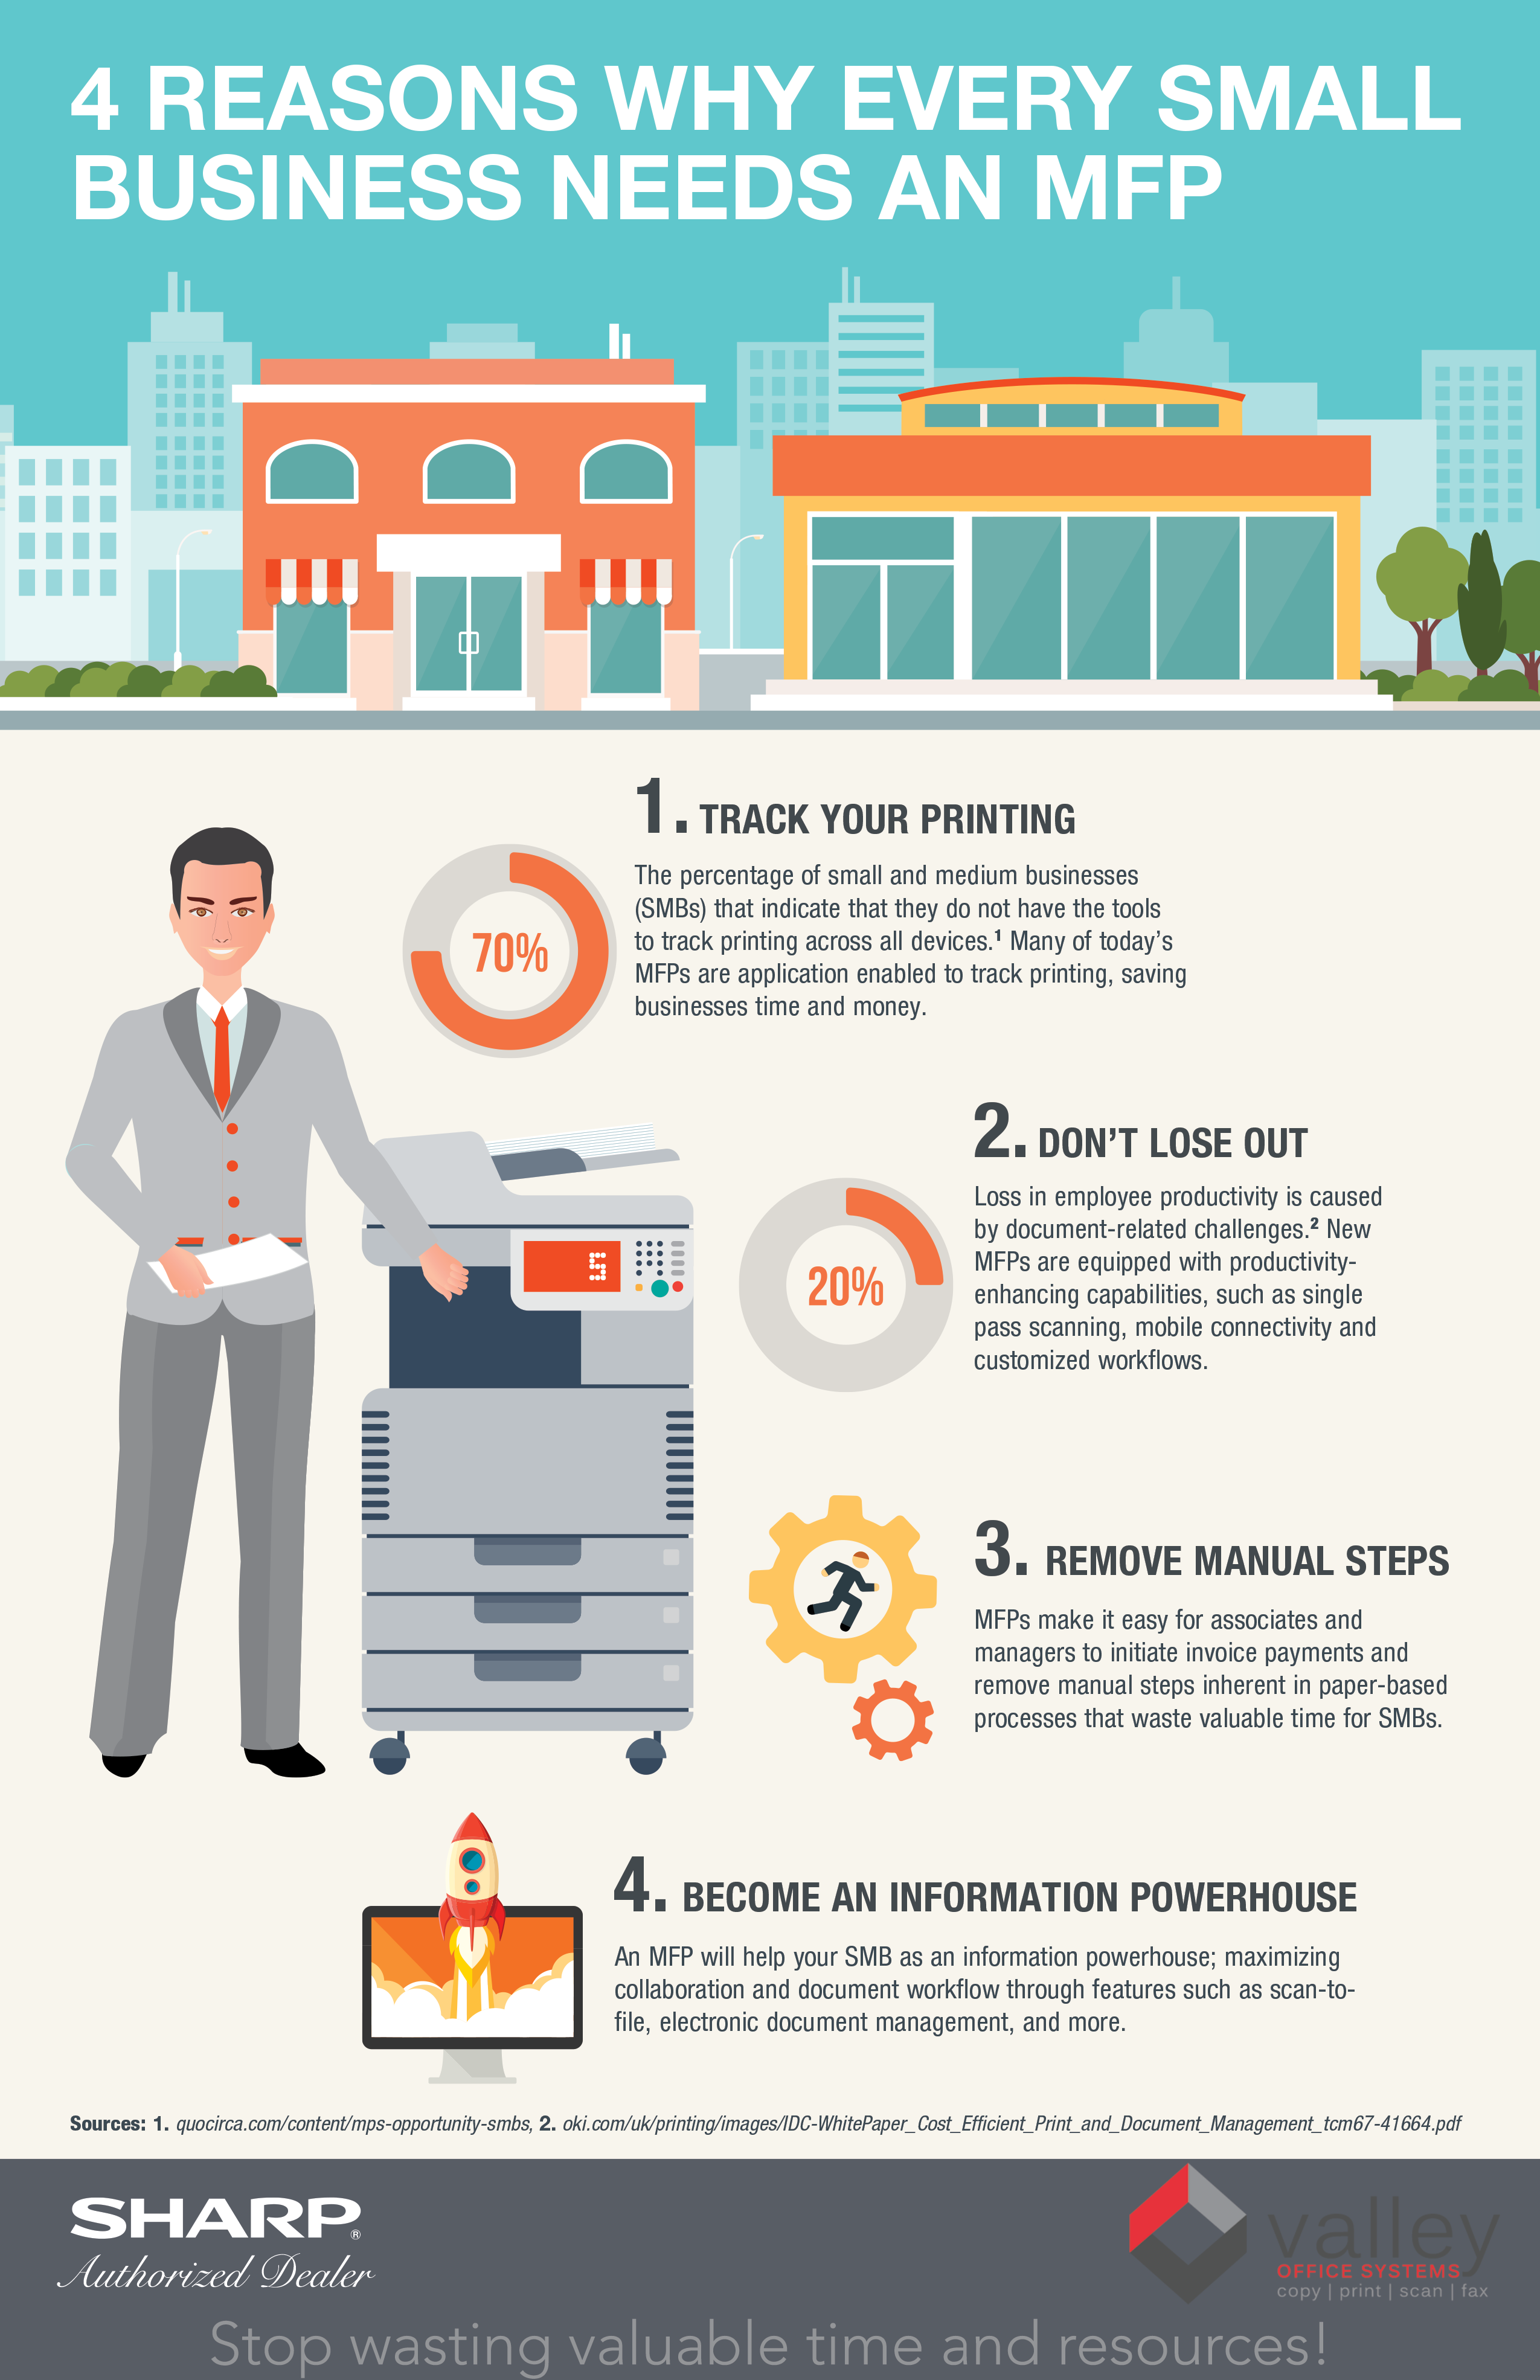 4-Reasons-Why-Every-Small-Business-Needs-an-MFP